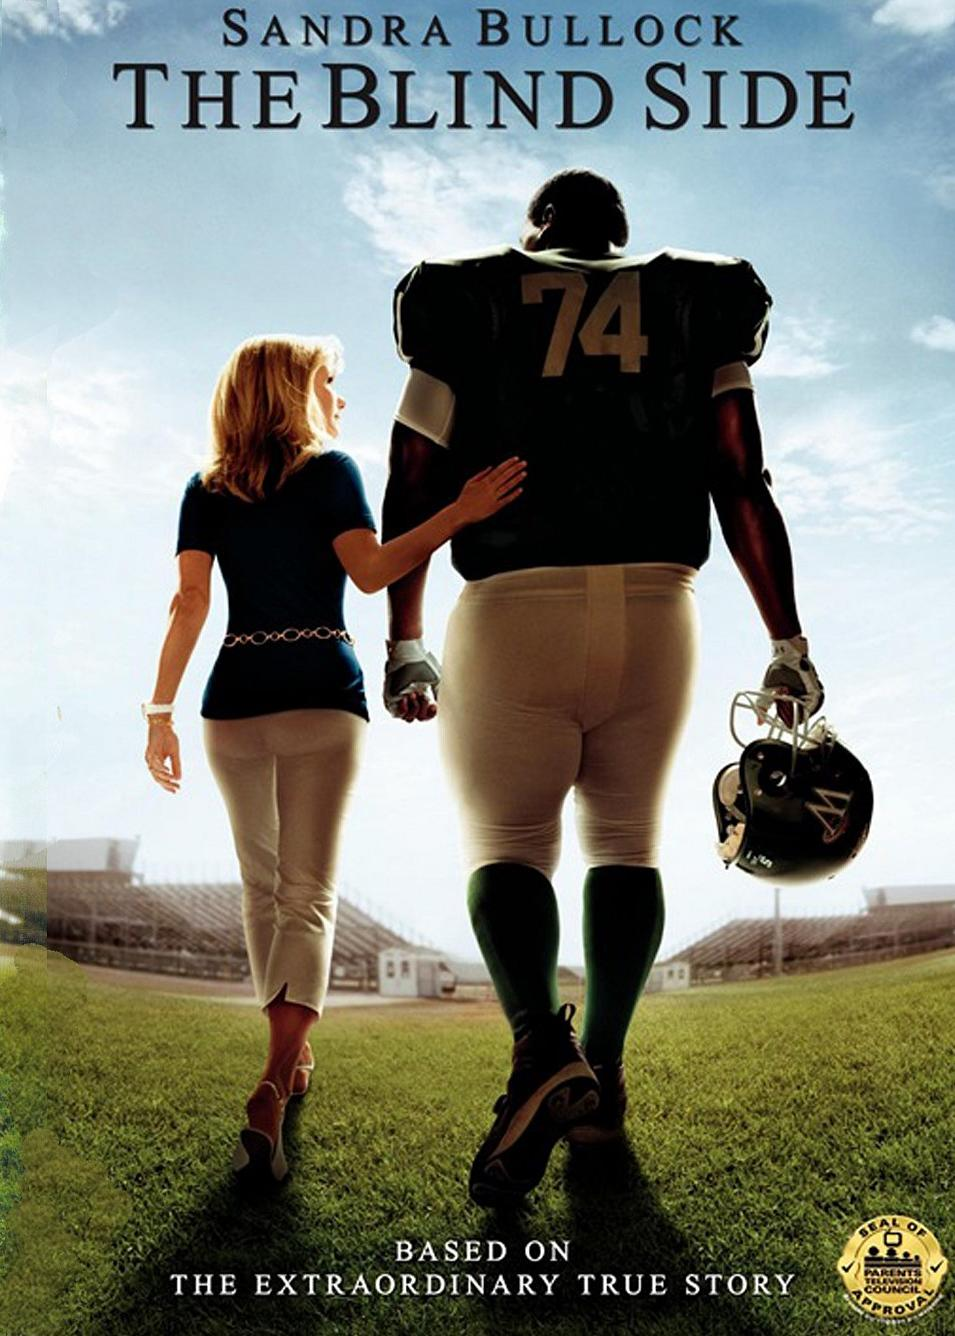 comparison of the blind side movie vs book In fact, after the blind side was released in september 2006, nfl teams went on a four-year tackle binge, drafting 19 first-round tackles compared to just three centers and two guards.